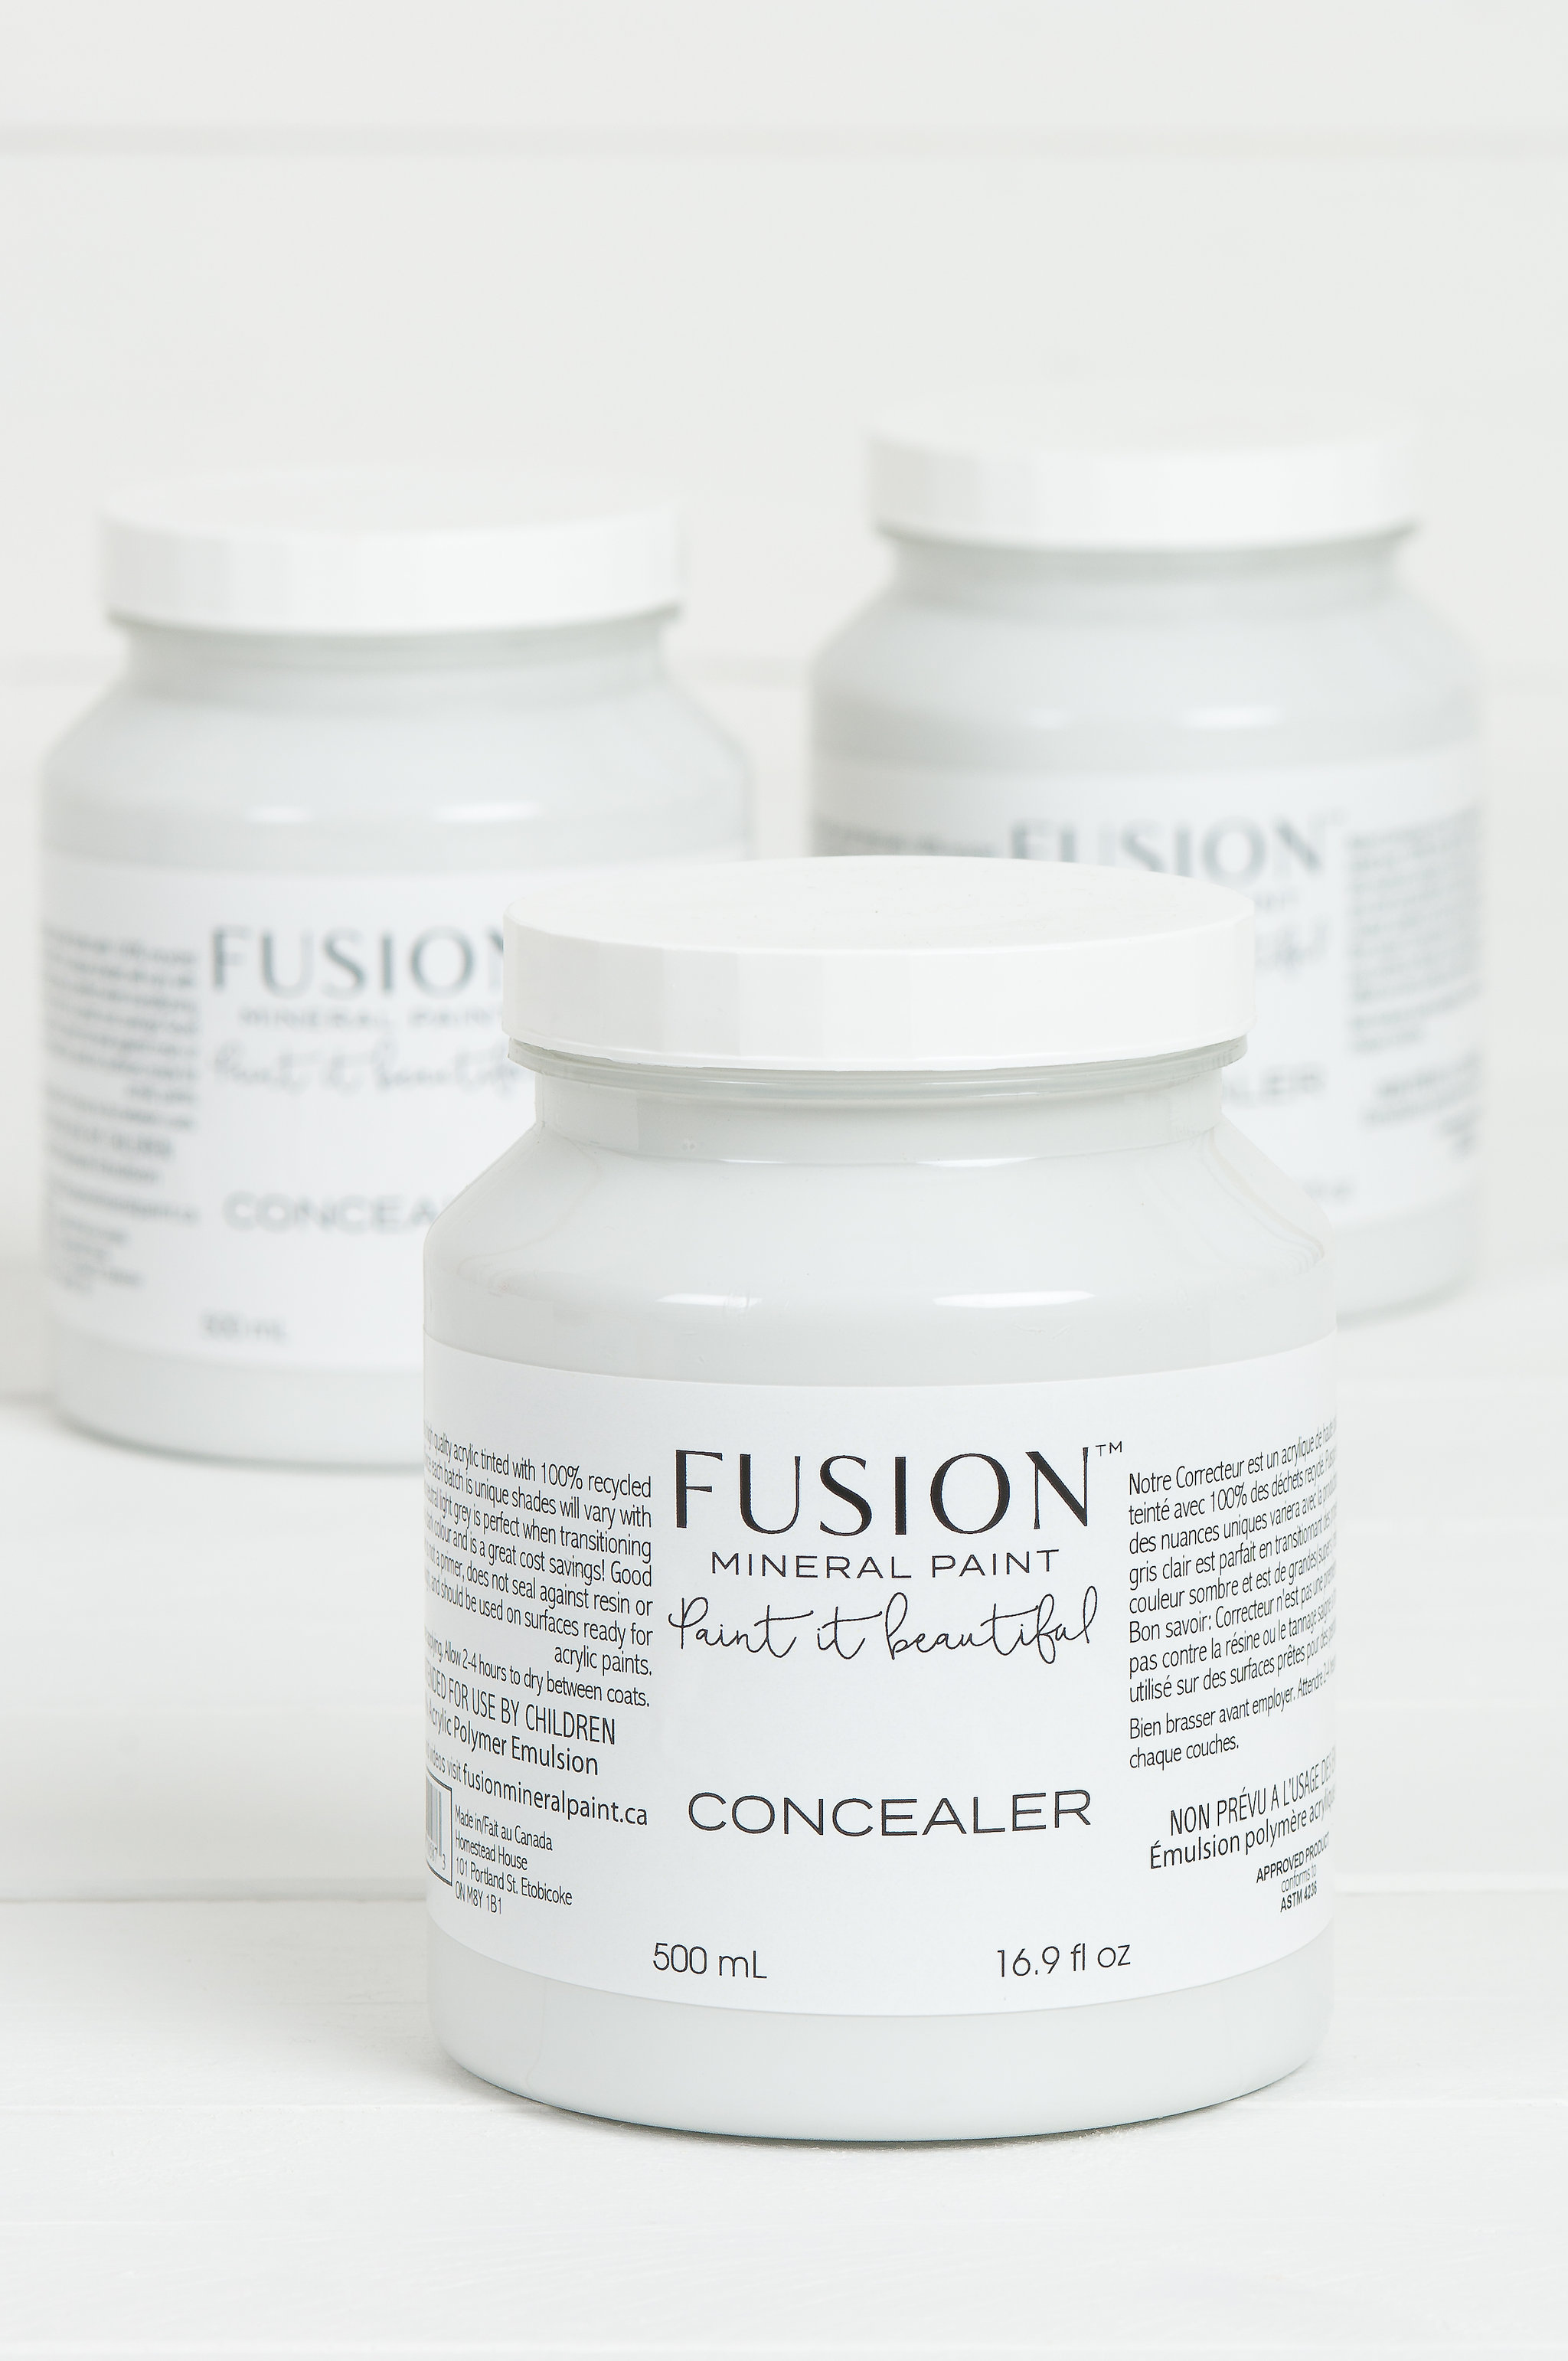 Concealer, your 'Go To' Base Coat. | fusionmineralpaint.com